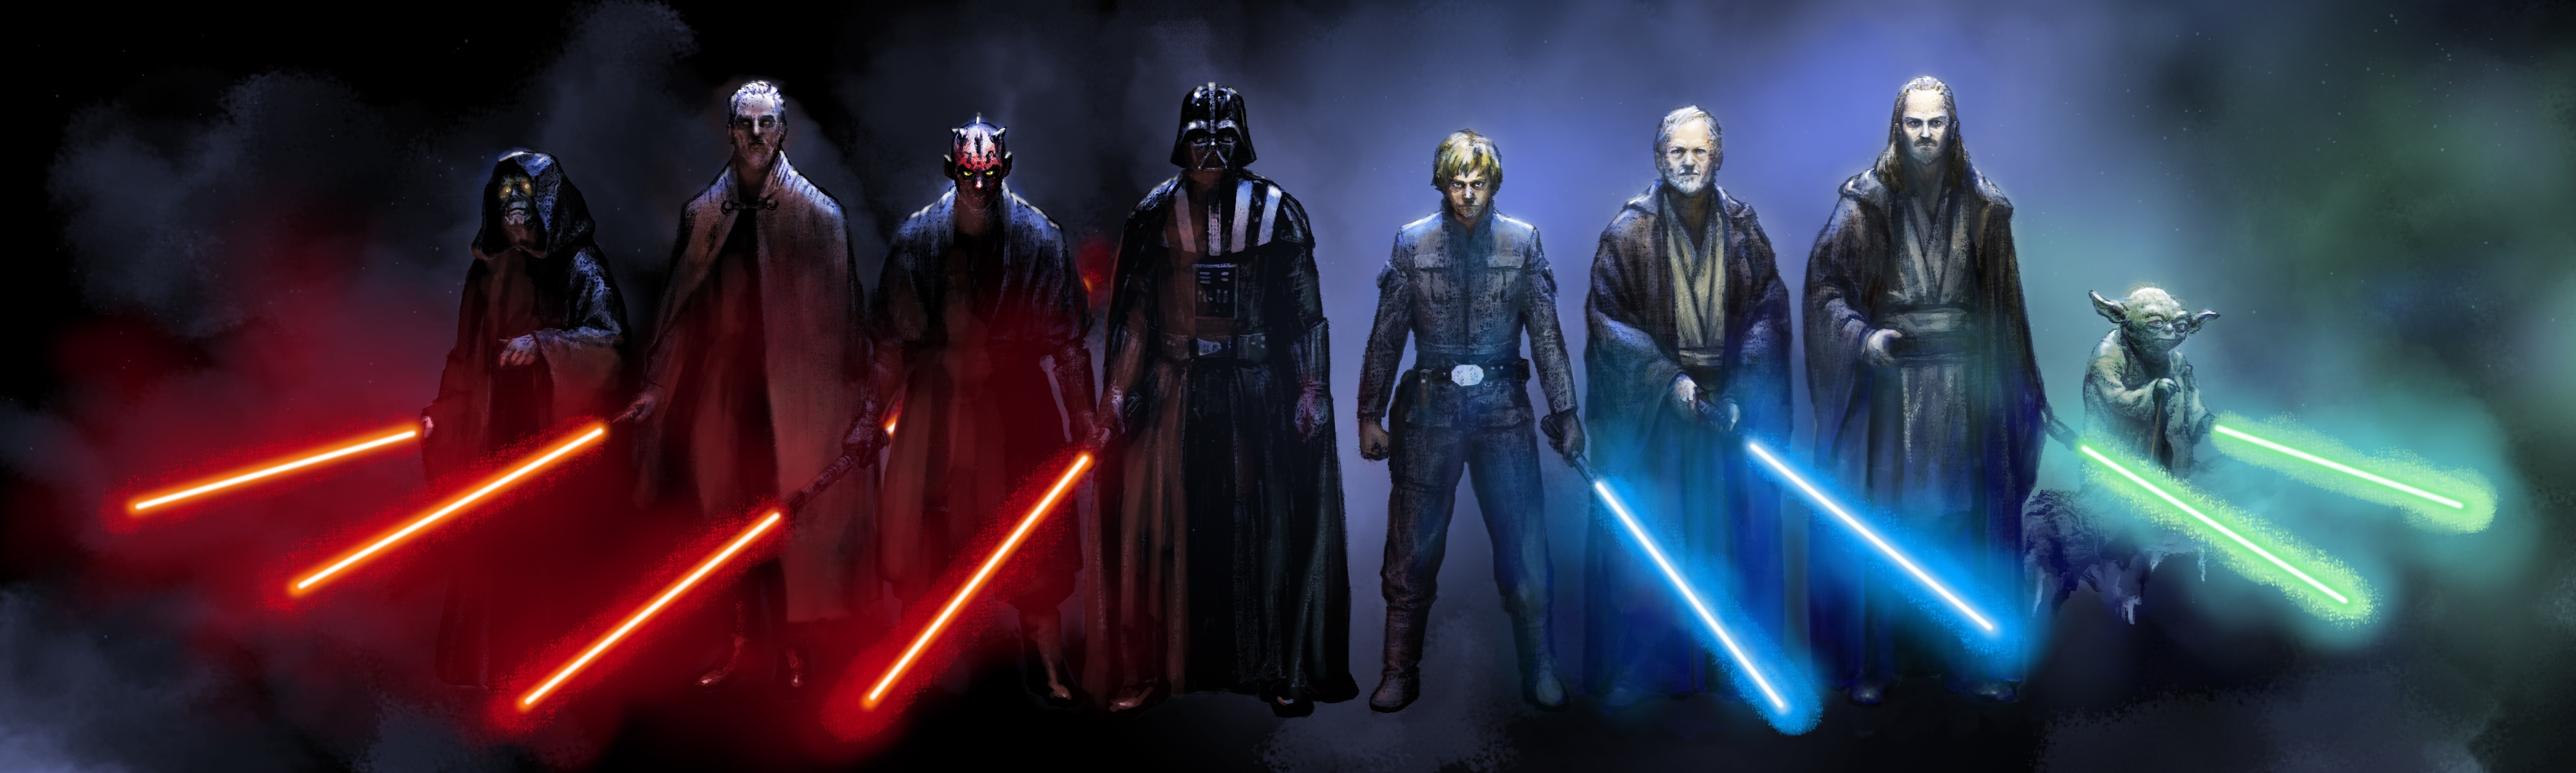 Star Wars Jedi Vs Sith Wallpaper 8 4000x1200